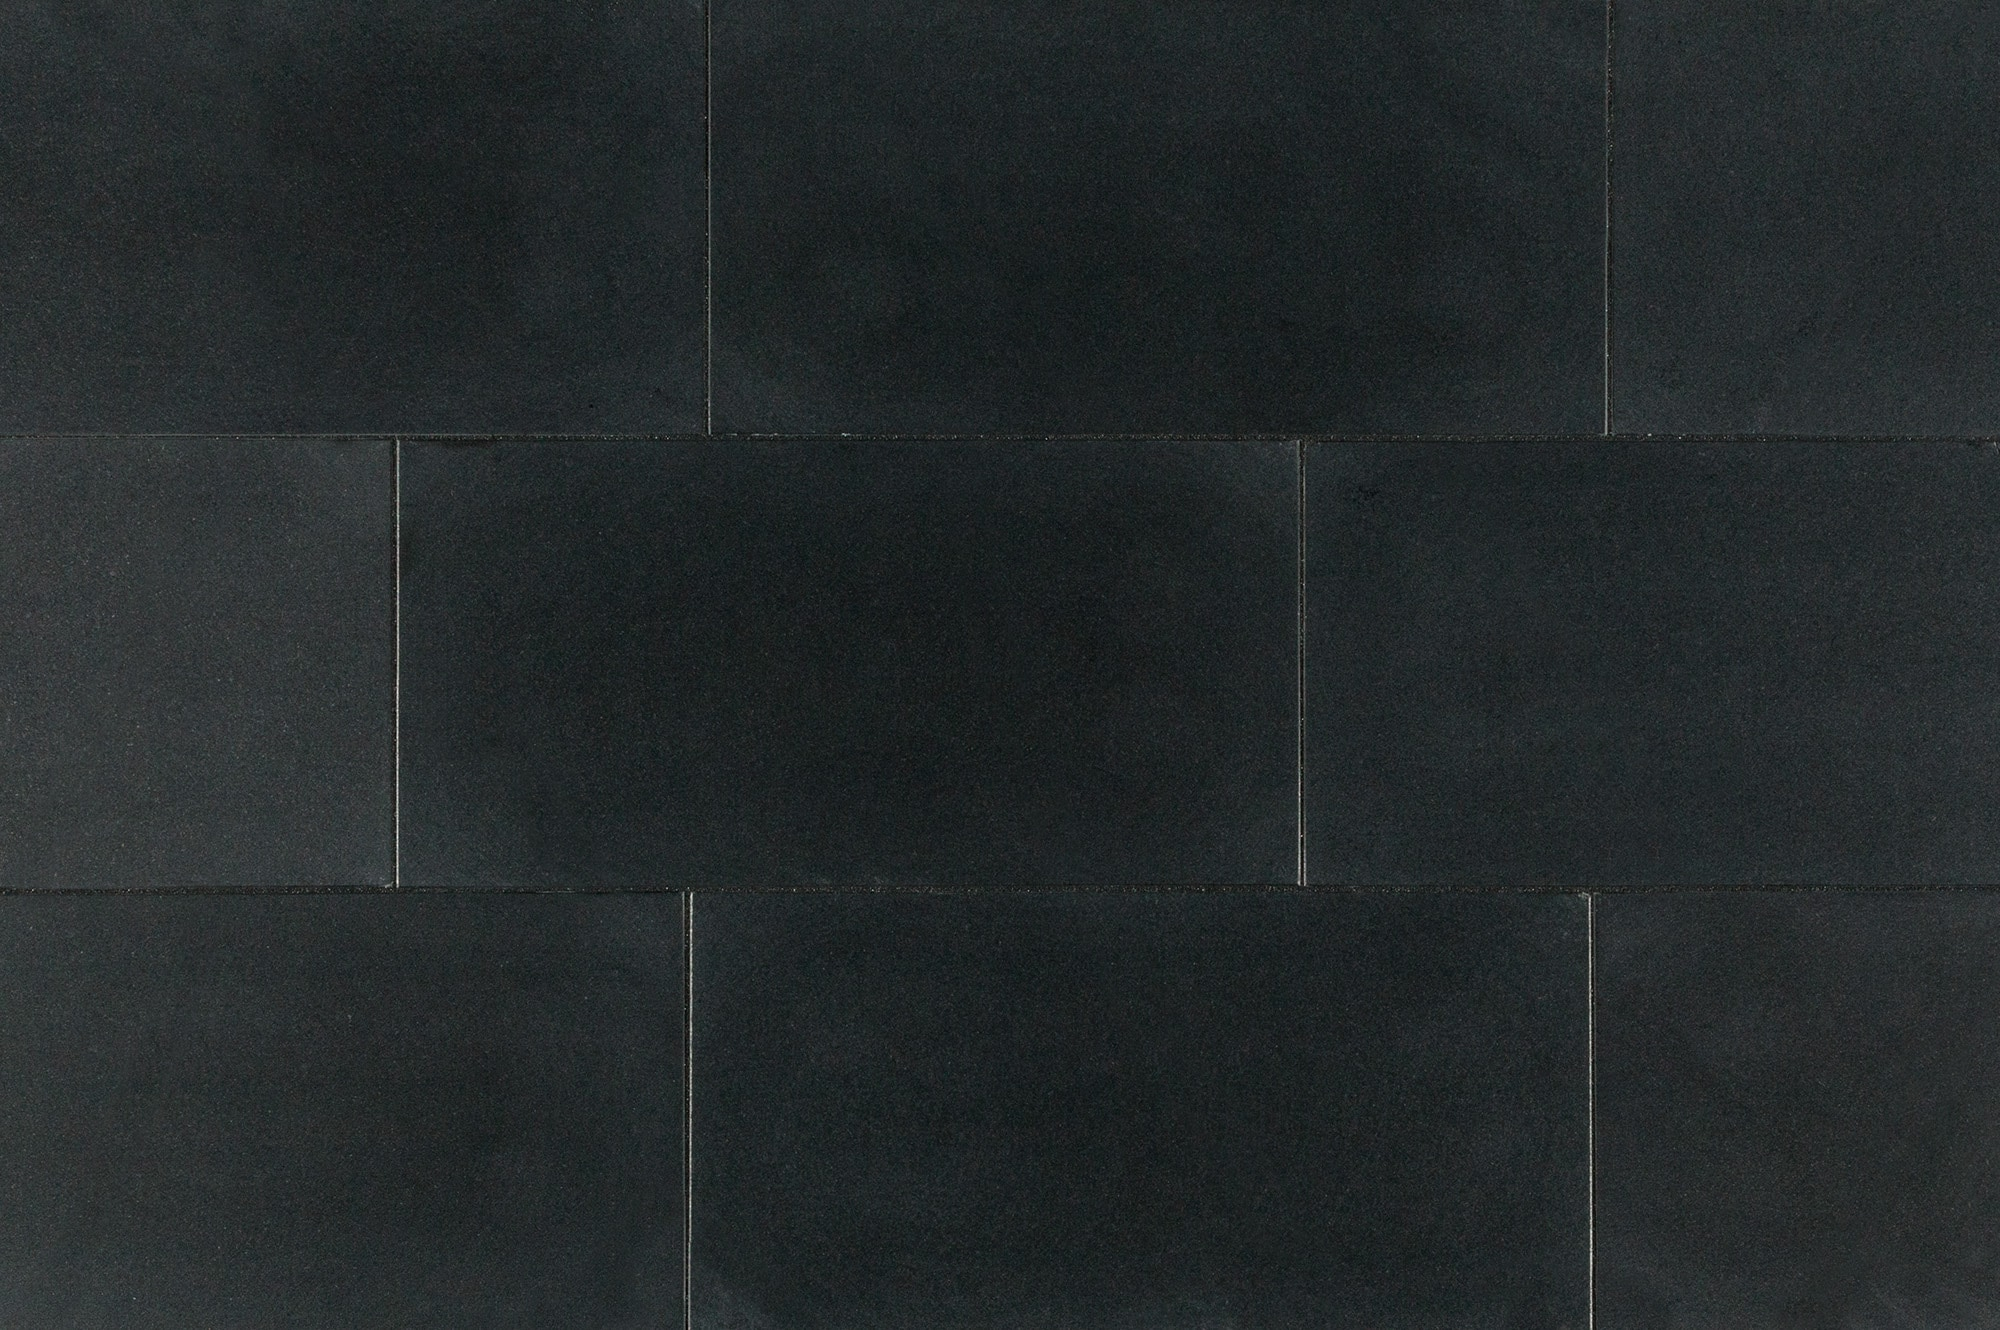 Agra granite tile pallavas collection absolute black 12x24x3 agra granite tile pallavas collection absolute black 12x24x38 leathered dailygadgetfo Images